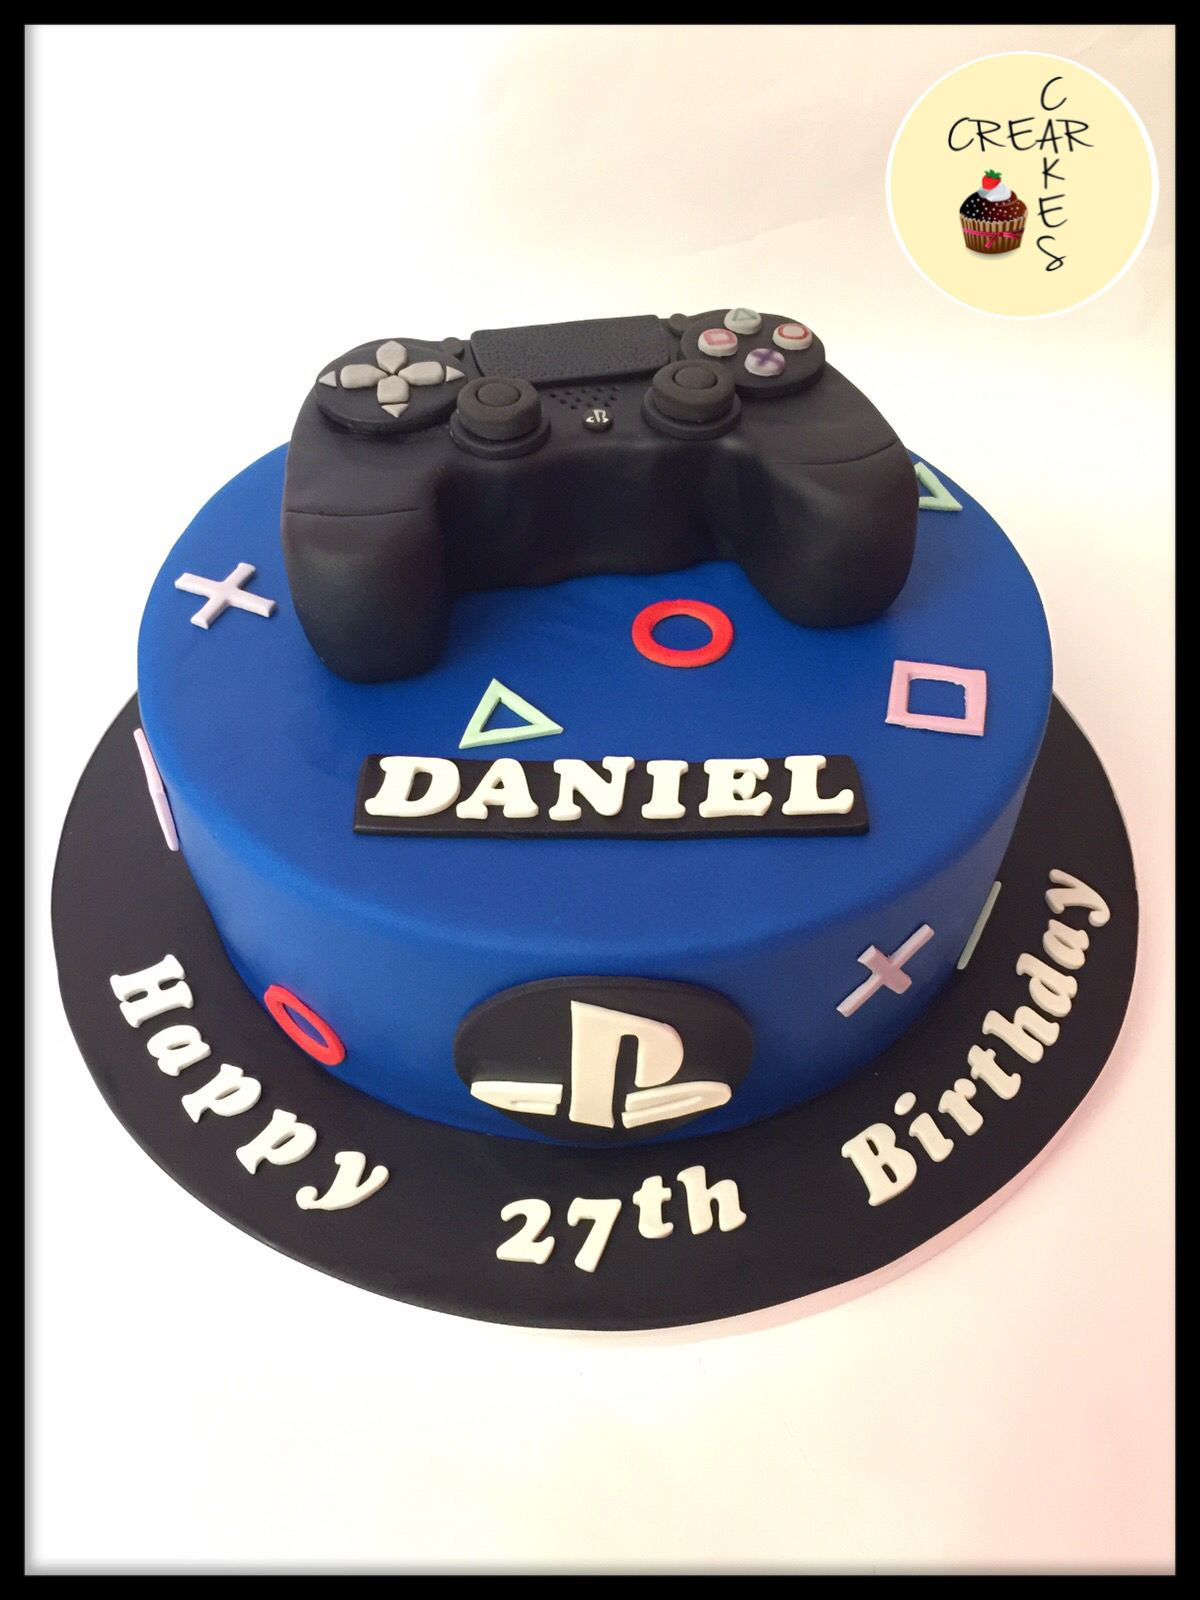 Playstation Cake Playstation Cake